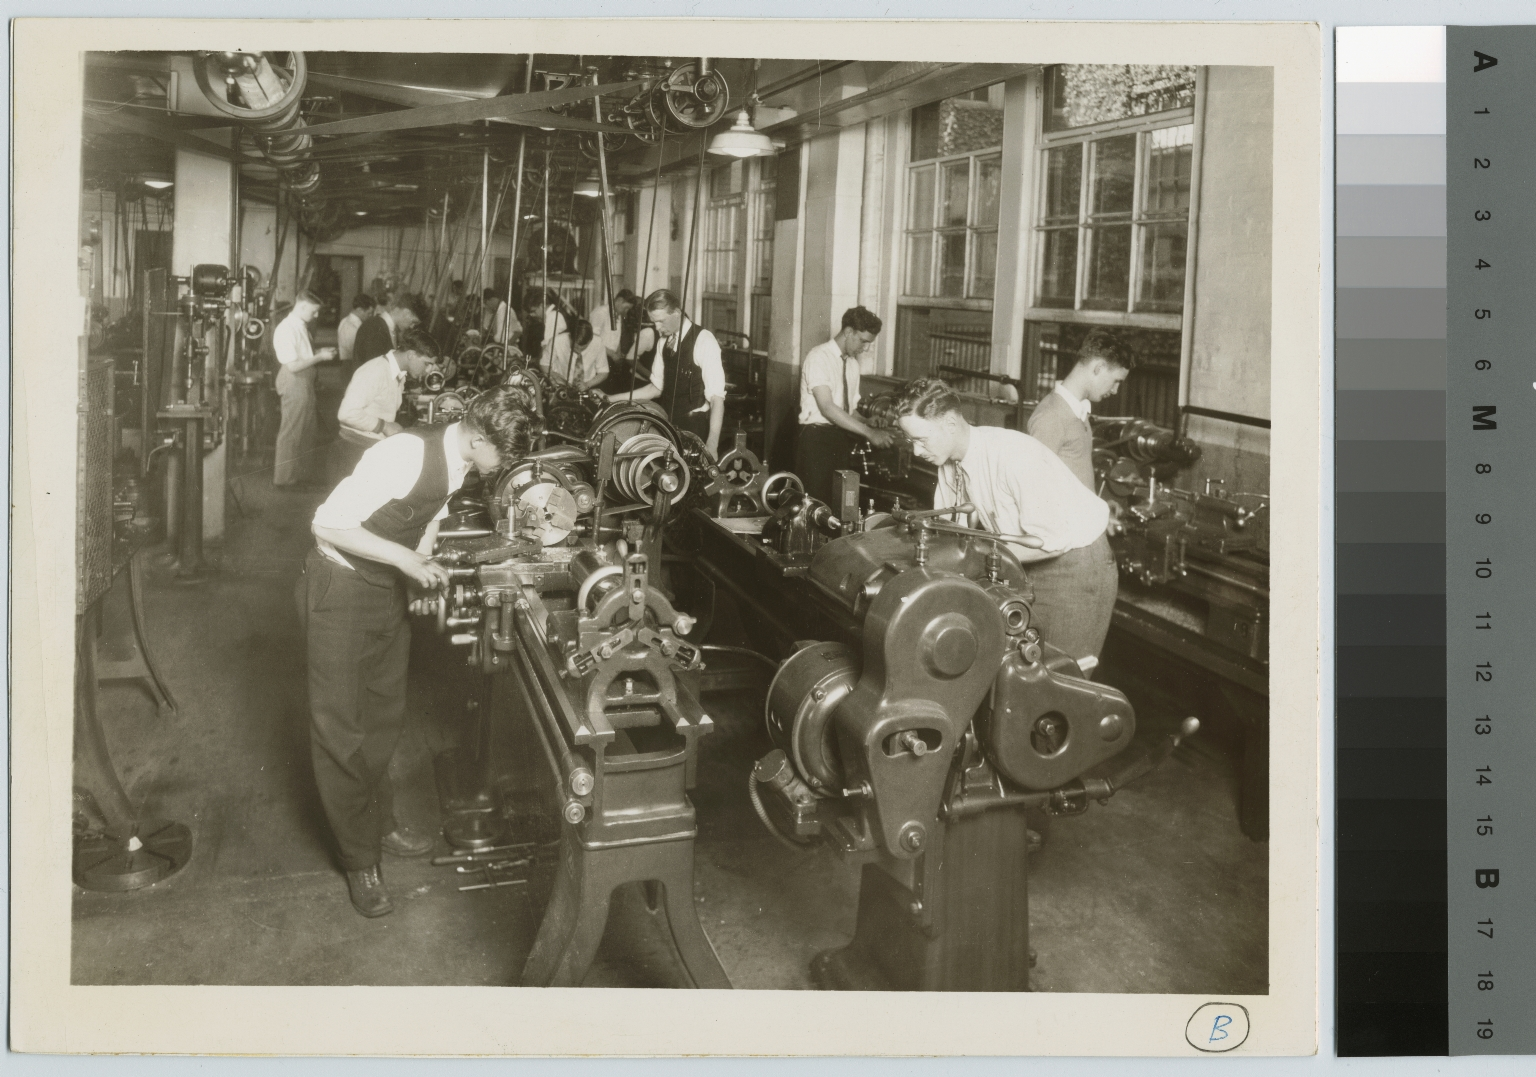 Unidentified students in machine shop, School of Industrial Arts, Rochester Athenaeum and Mechanics Institute [1920-1930]